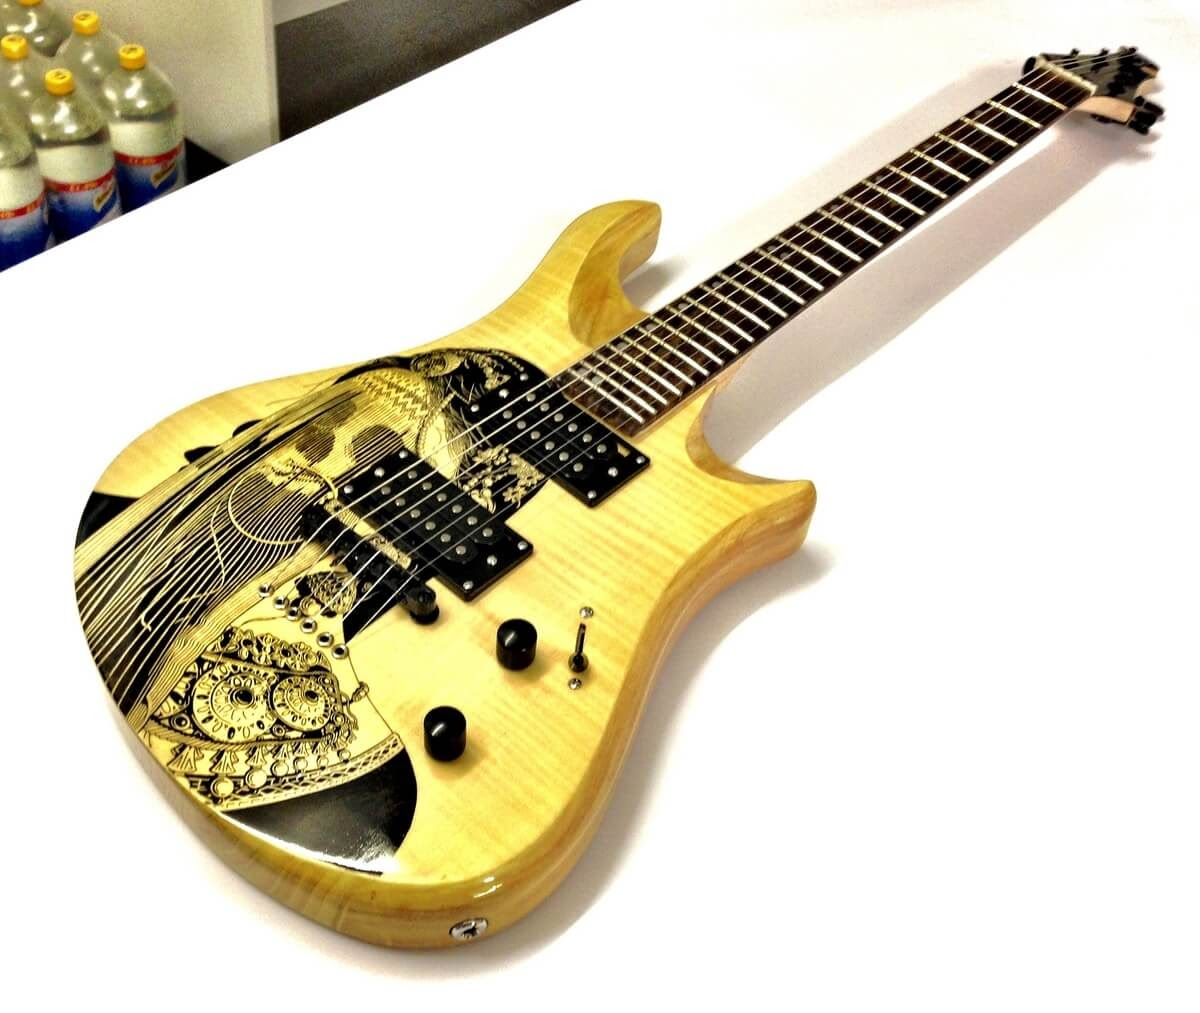 08-Patrick-Fisher-Personalise-your-Guitar-with-Drawings-www-designstack-co